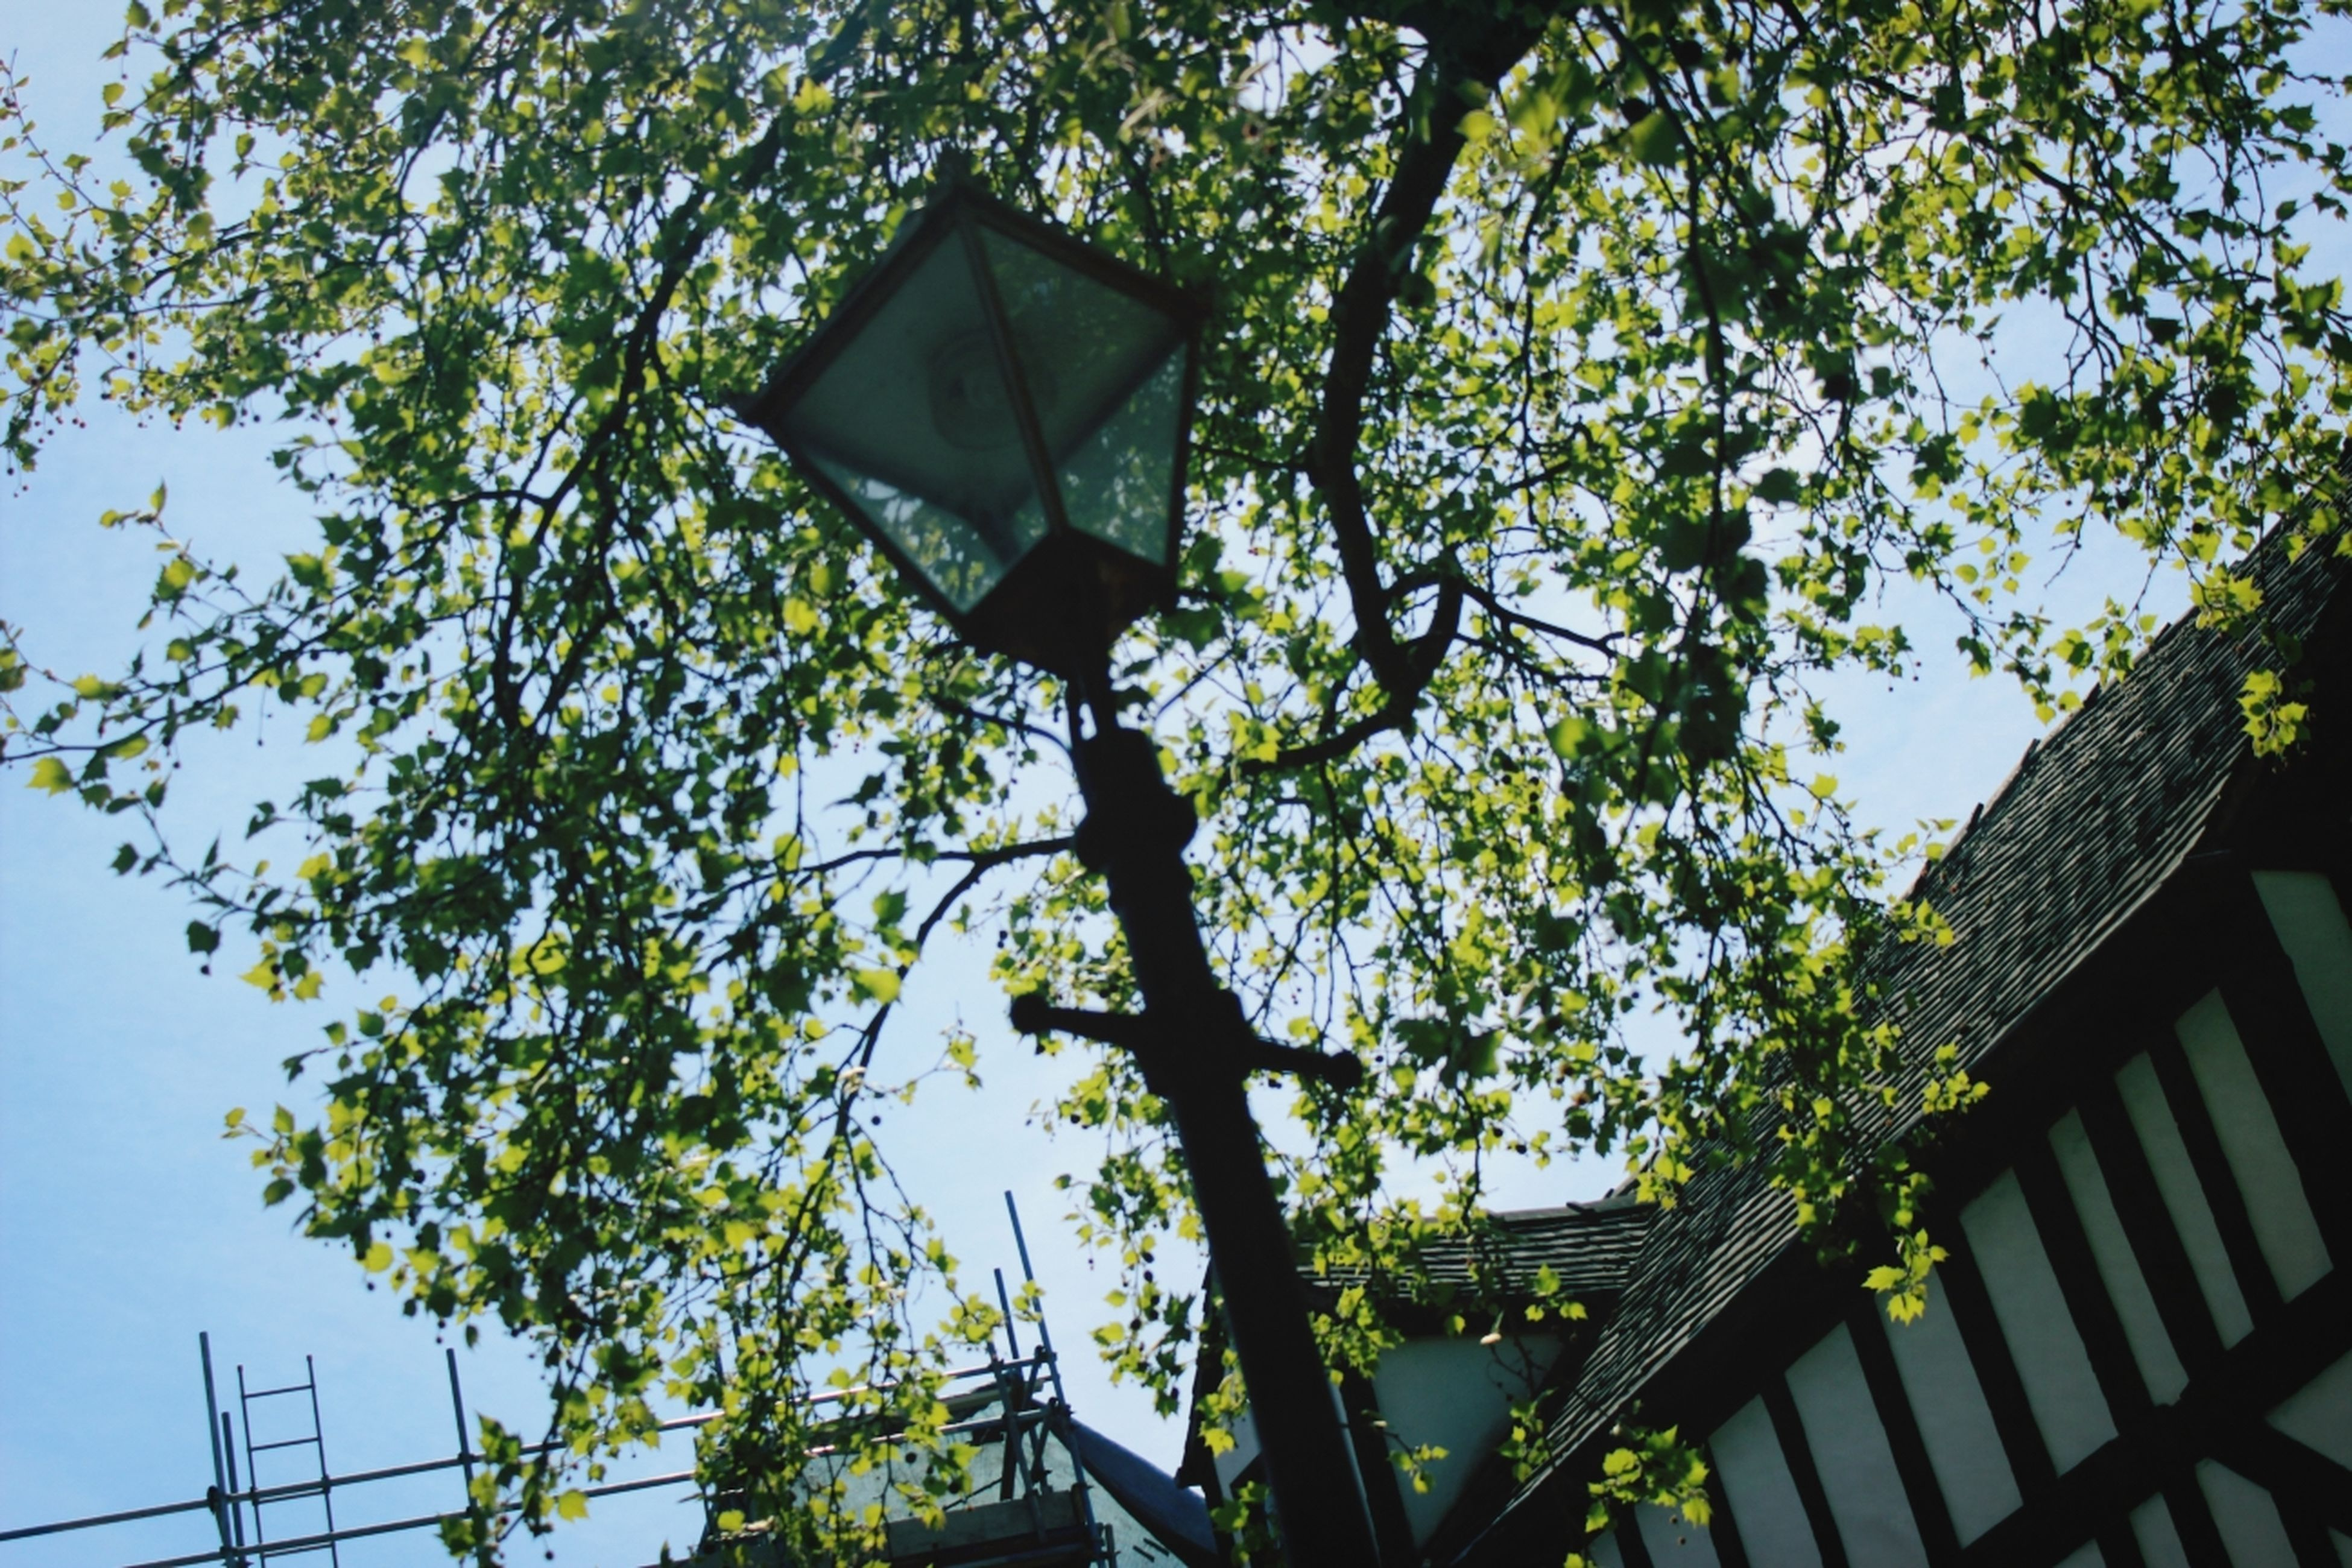 low angle view, tree, building exterior, built structure, architecture, branch, growth, clear sky, street light, lighting equipment, sky, house, day, outdoors, no people, high section, residential building, nature, hanging, building